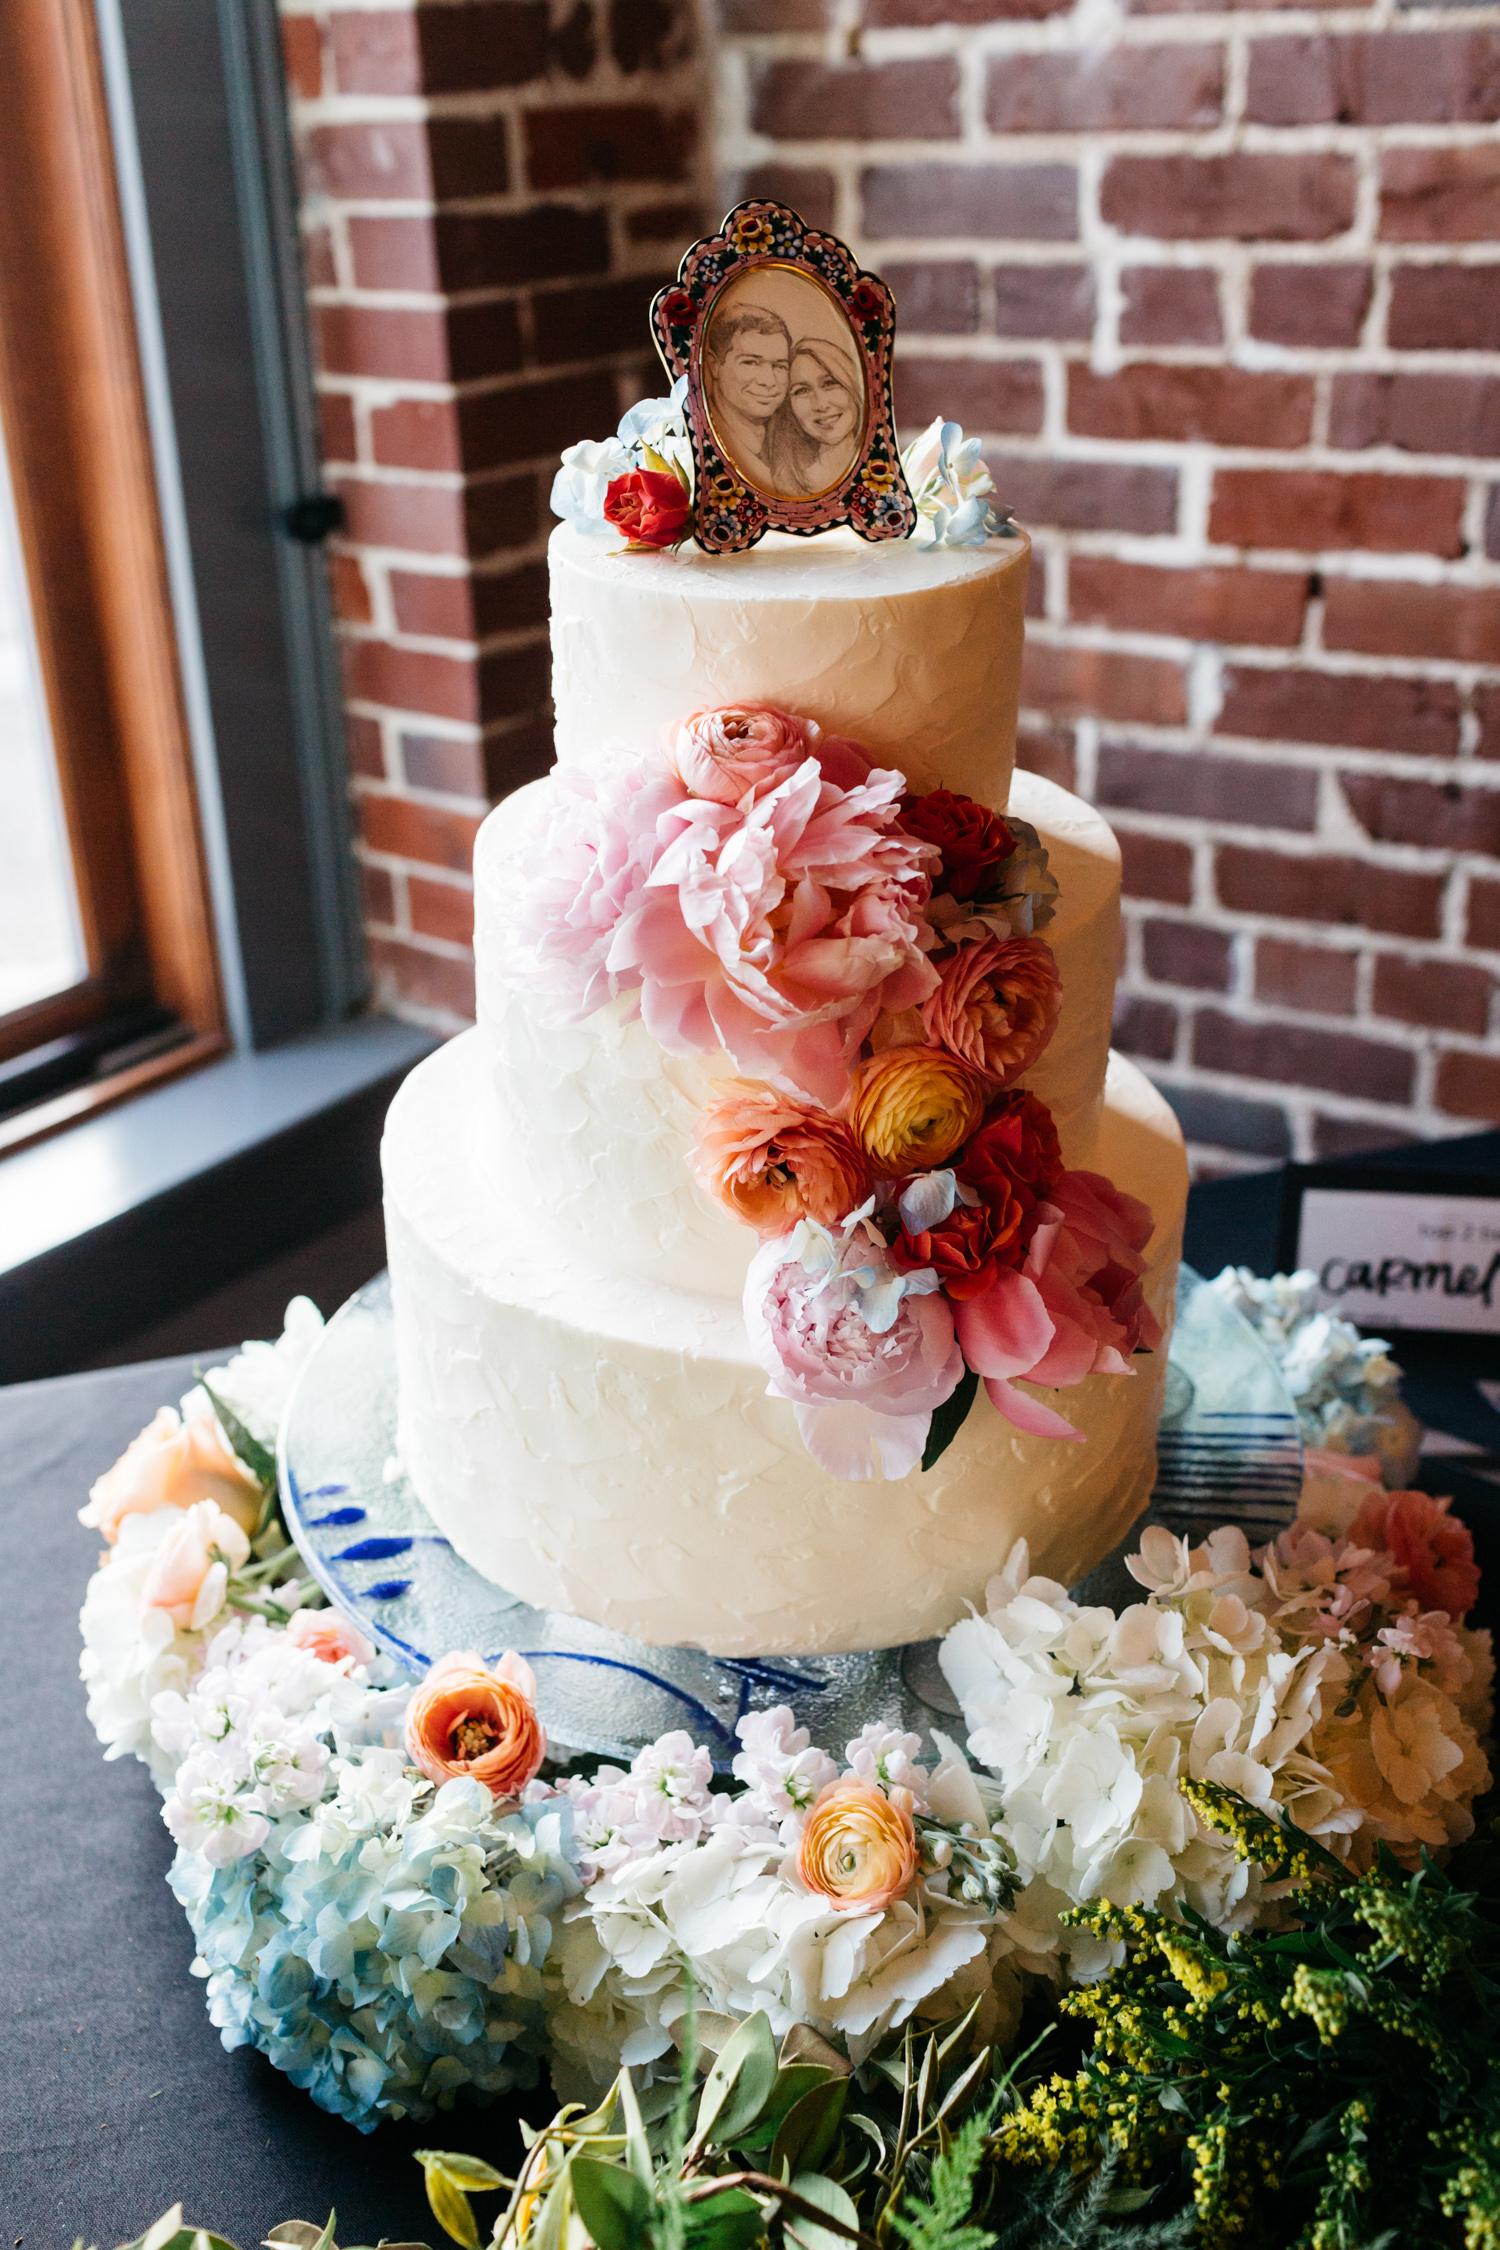 Standard Downtown Knoxville Wedding Venue Central Avenue Happy Holler Magpies Cakes